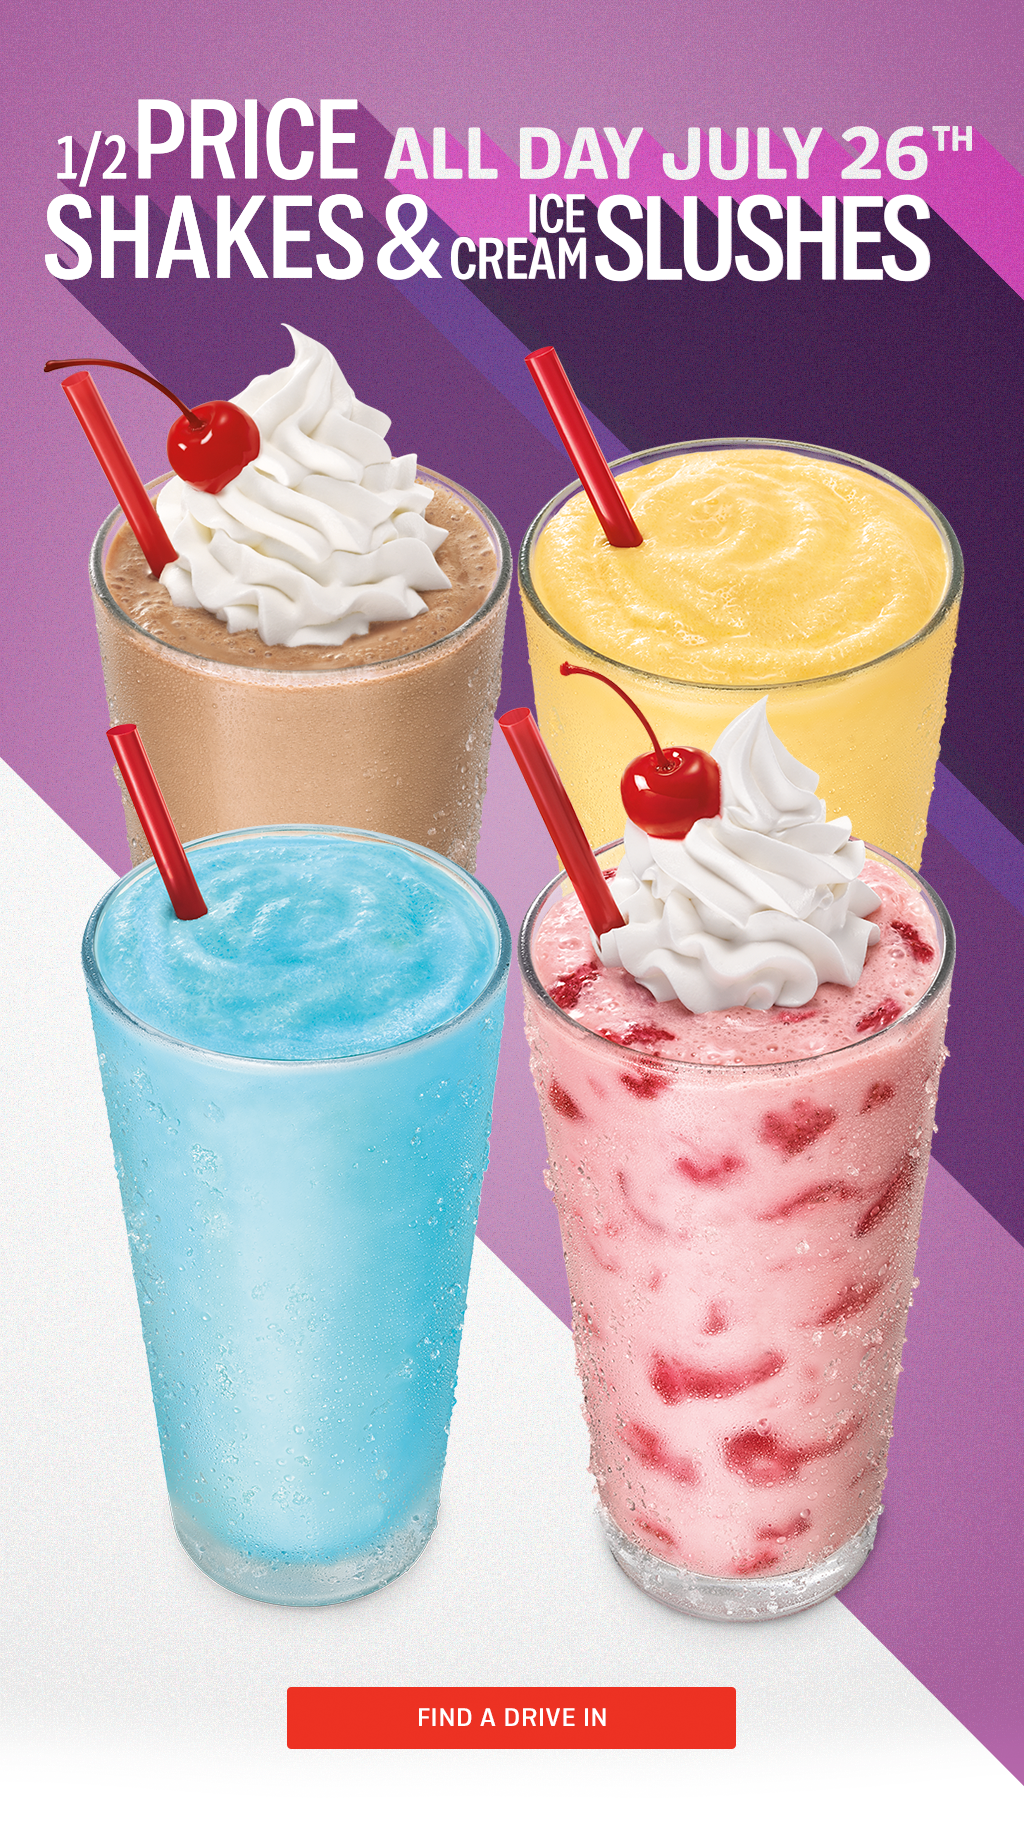 1/2 Price Shakes & Ice Cream Slushes 7/26